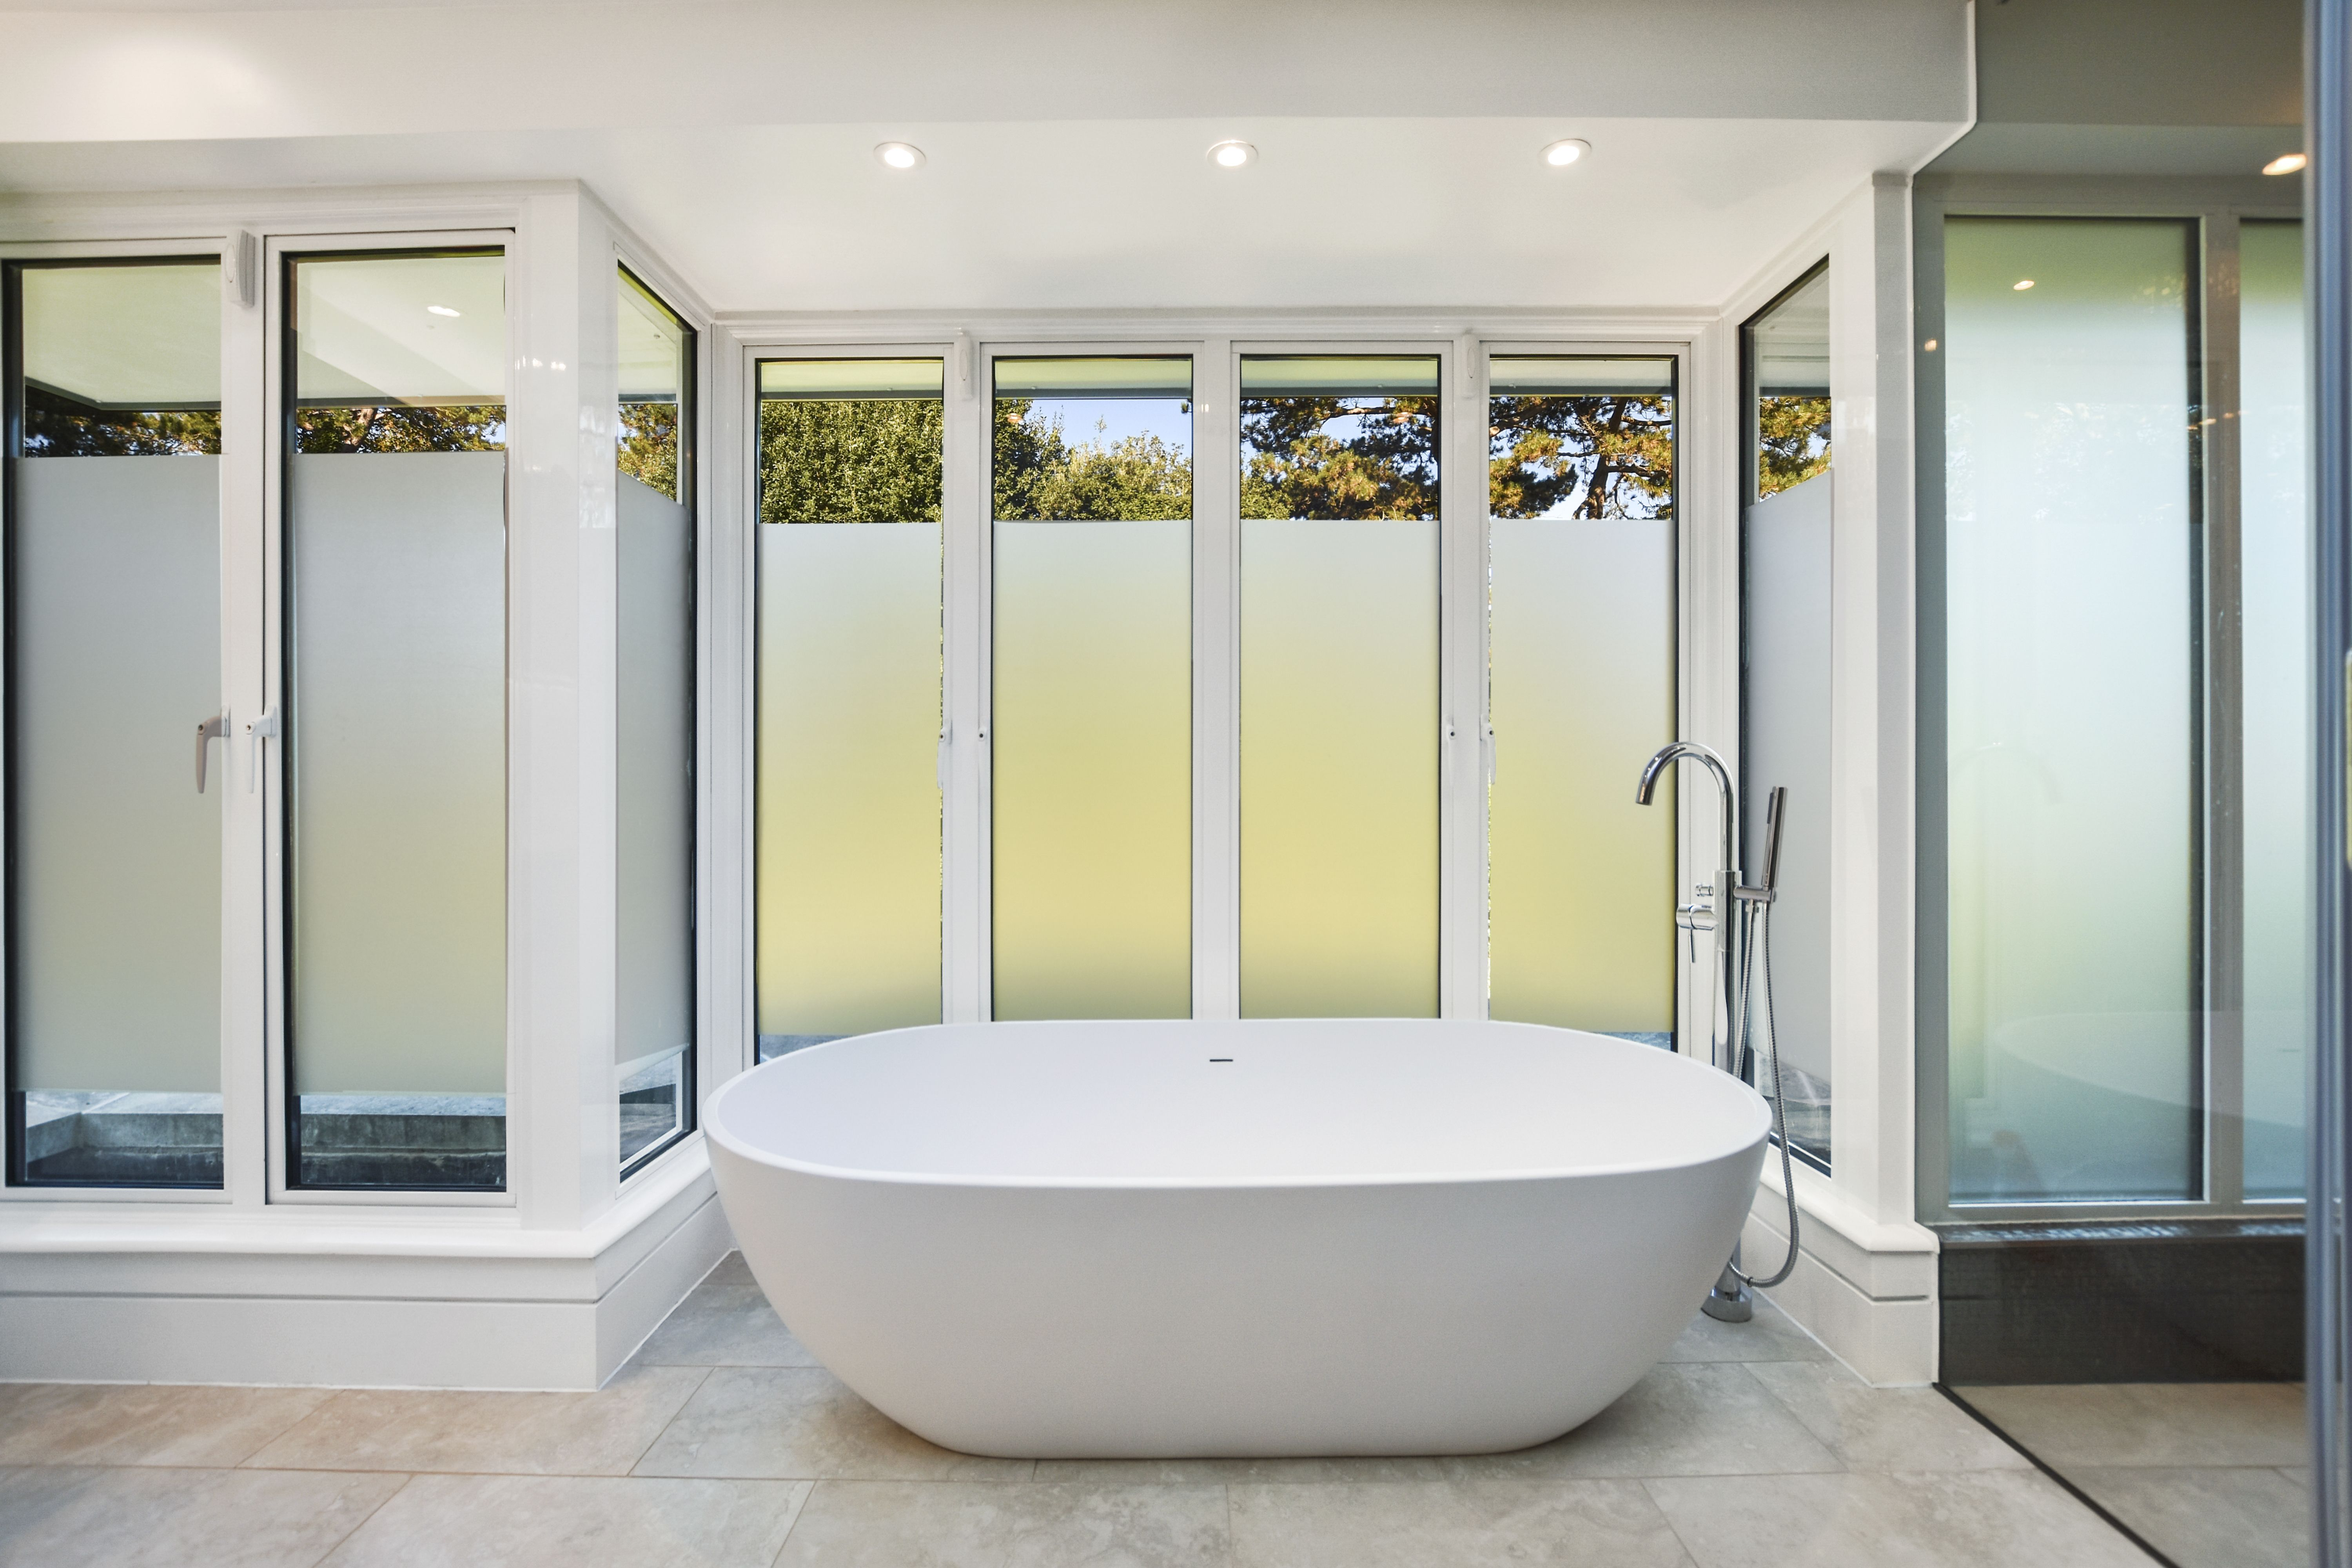 Bathroomsbydesign Is One Of The Uk S Leading Bathroom Retailers Championing Design Excellence Innovation Bathroom Solutions Bathroom Design Bespoke Bathroom